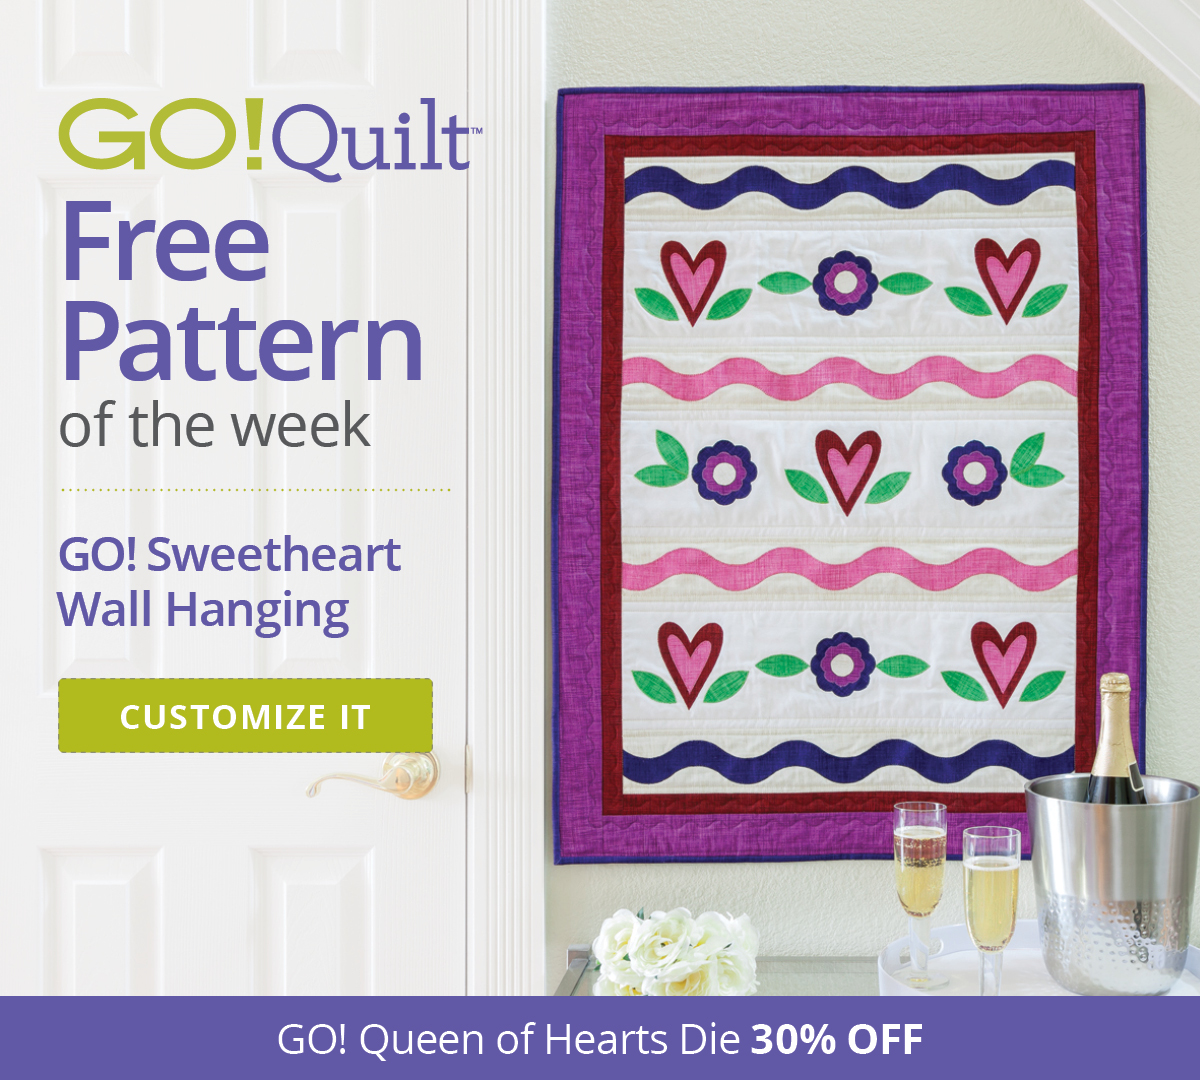 GO! Quilt Free Pattern of the Week | GO! Sweetheart Wall Hanging